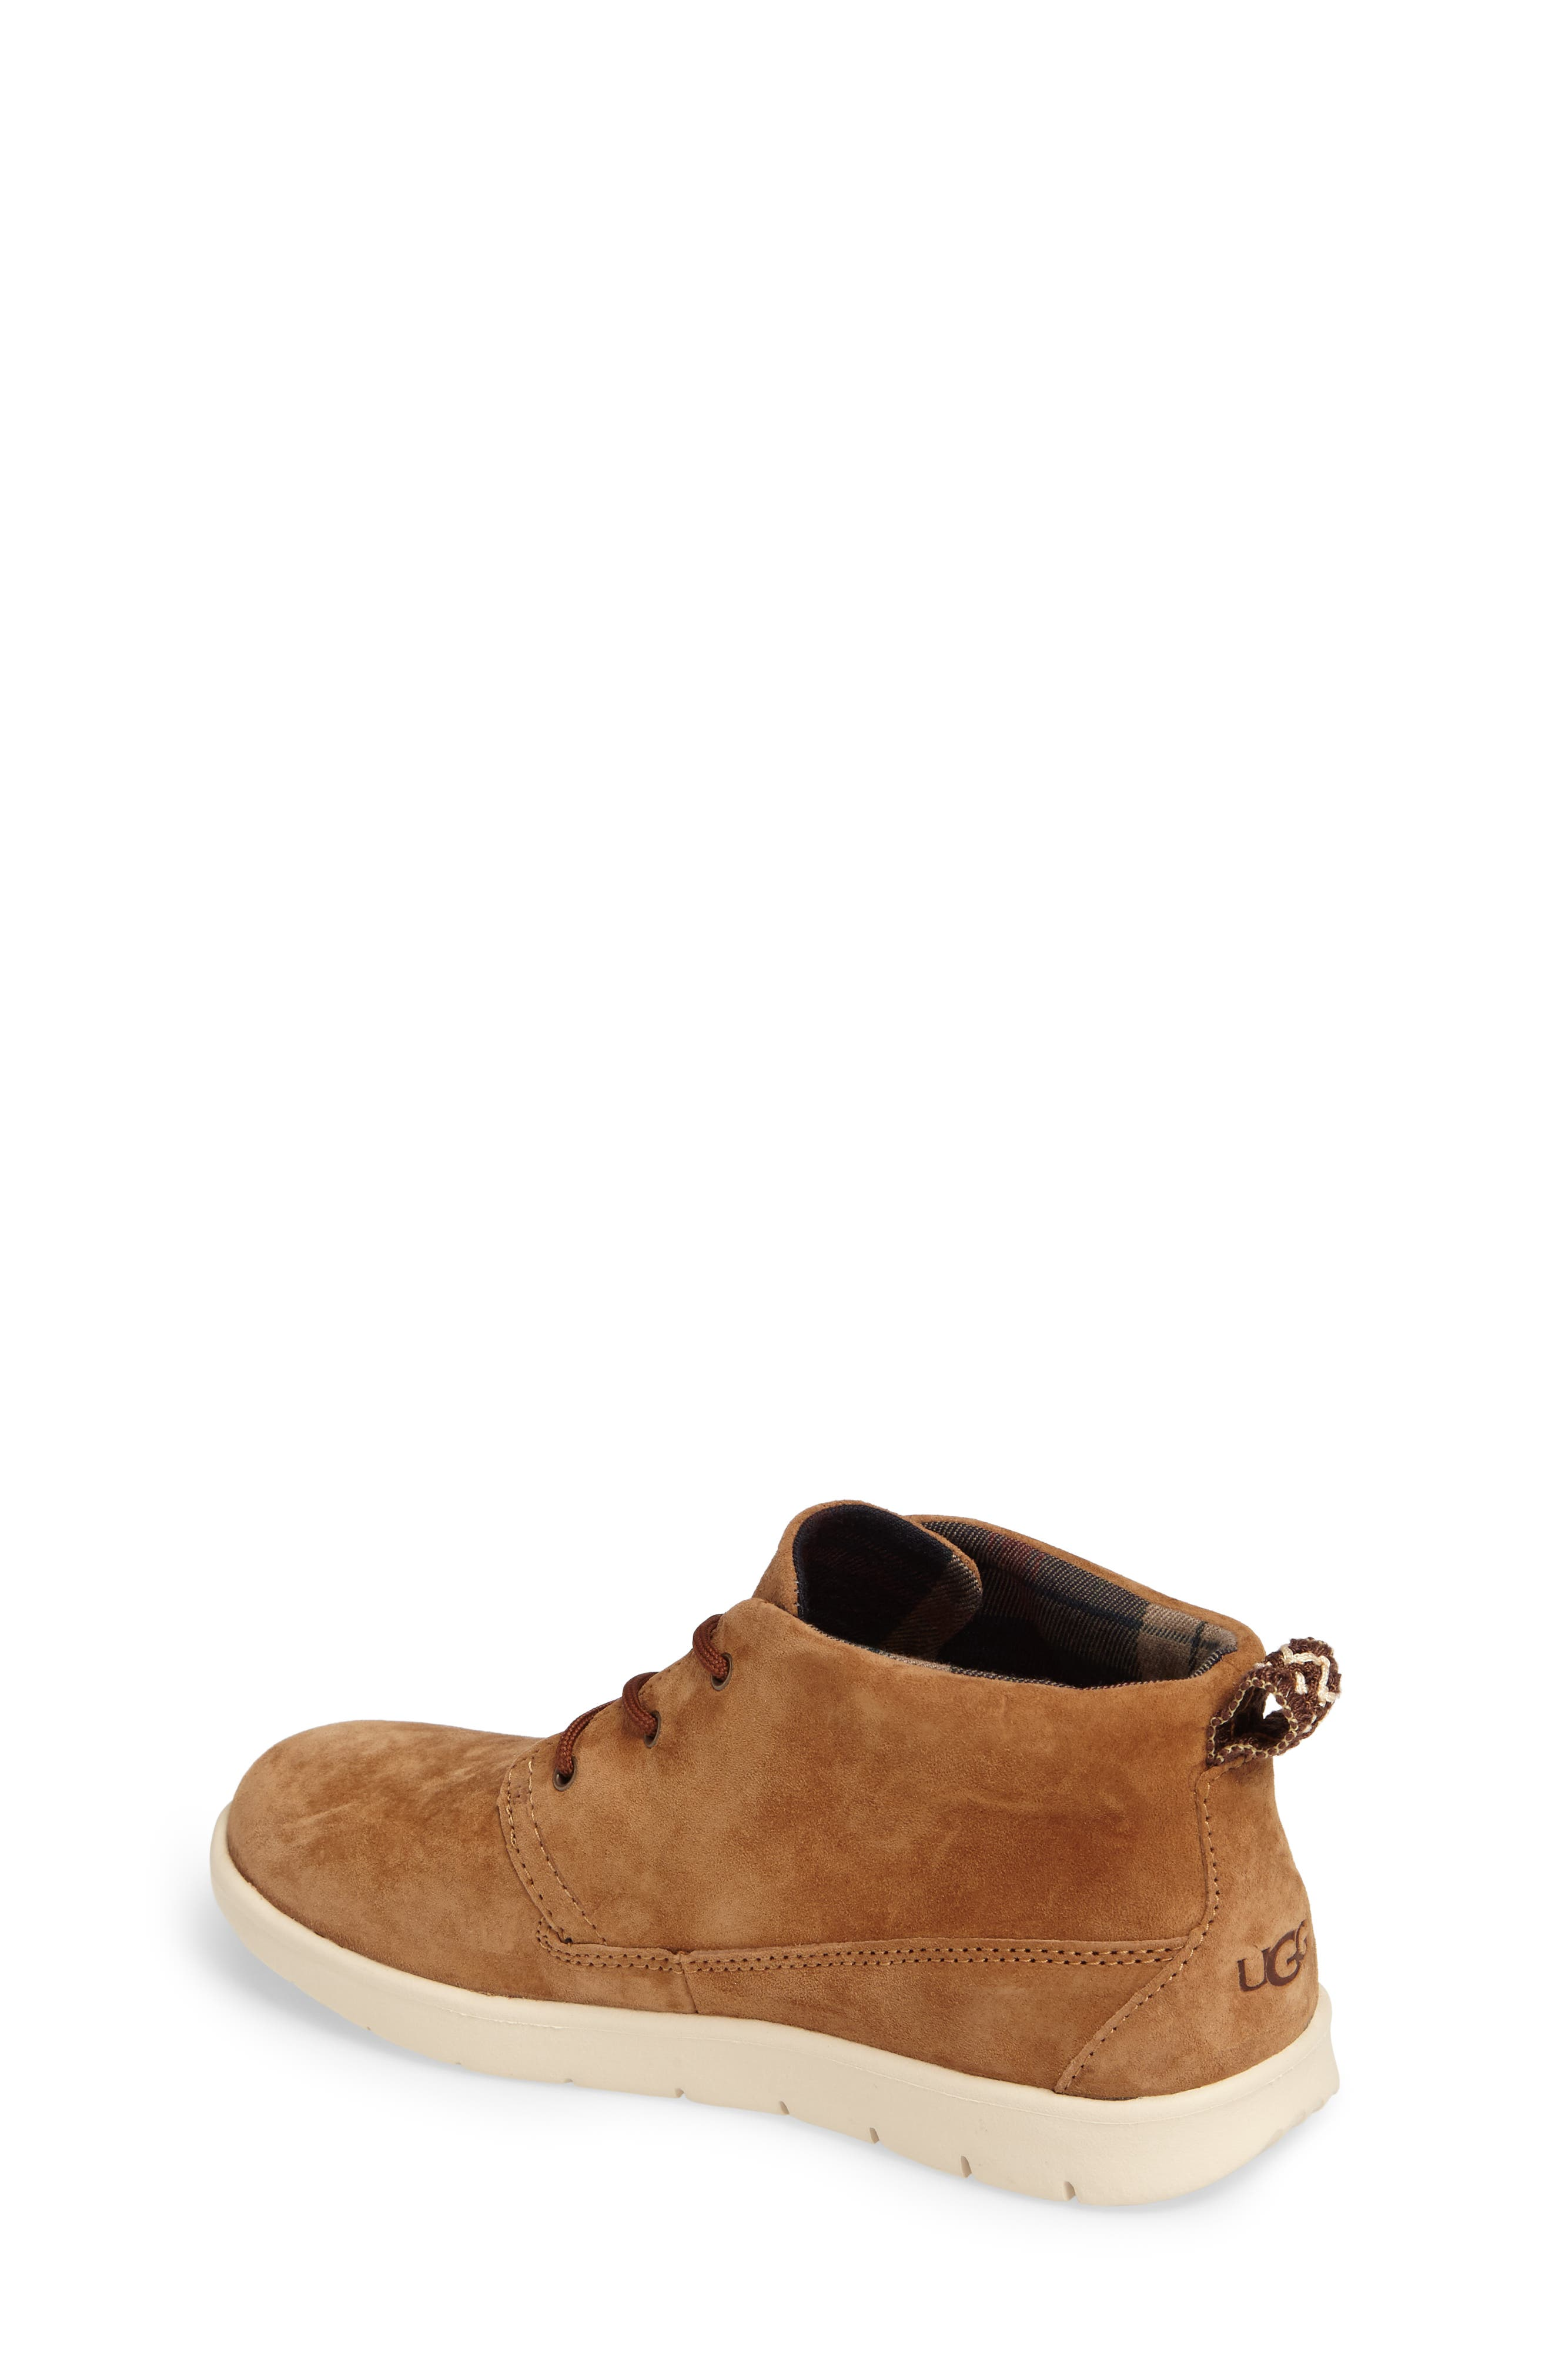 Alternate Image 2  - UGG® Canoe Chukka Boot (Walker, Toddler, Little Kid & Big Kid)